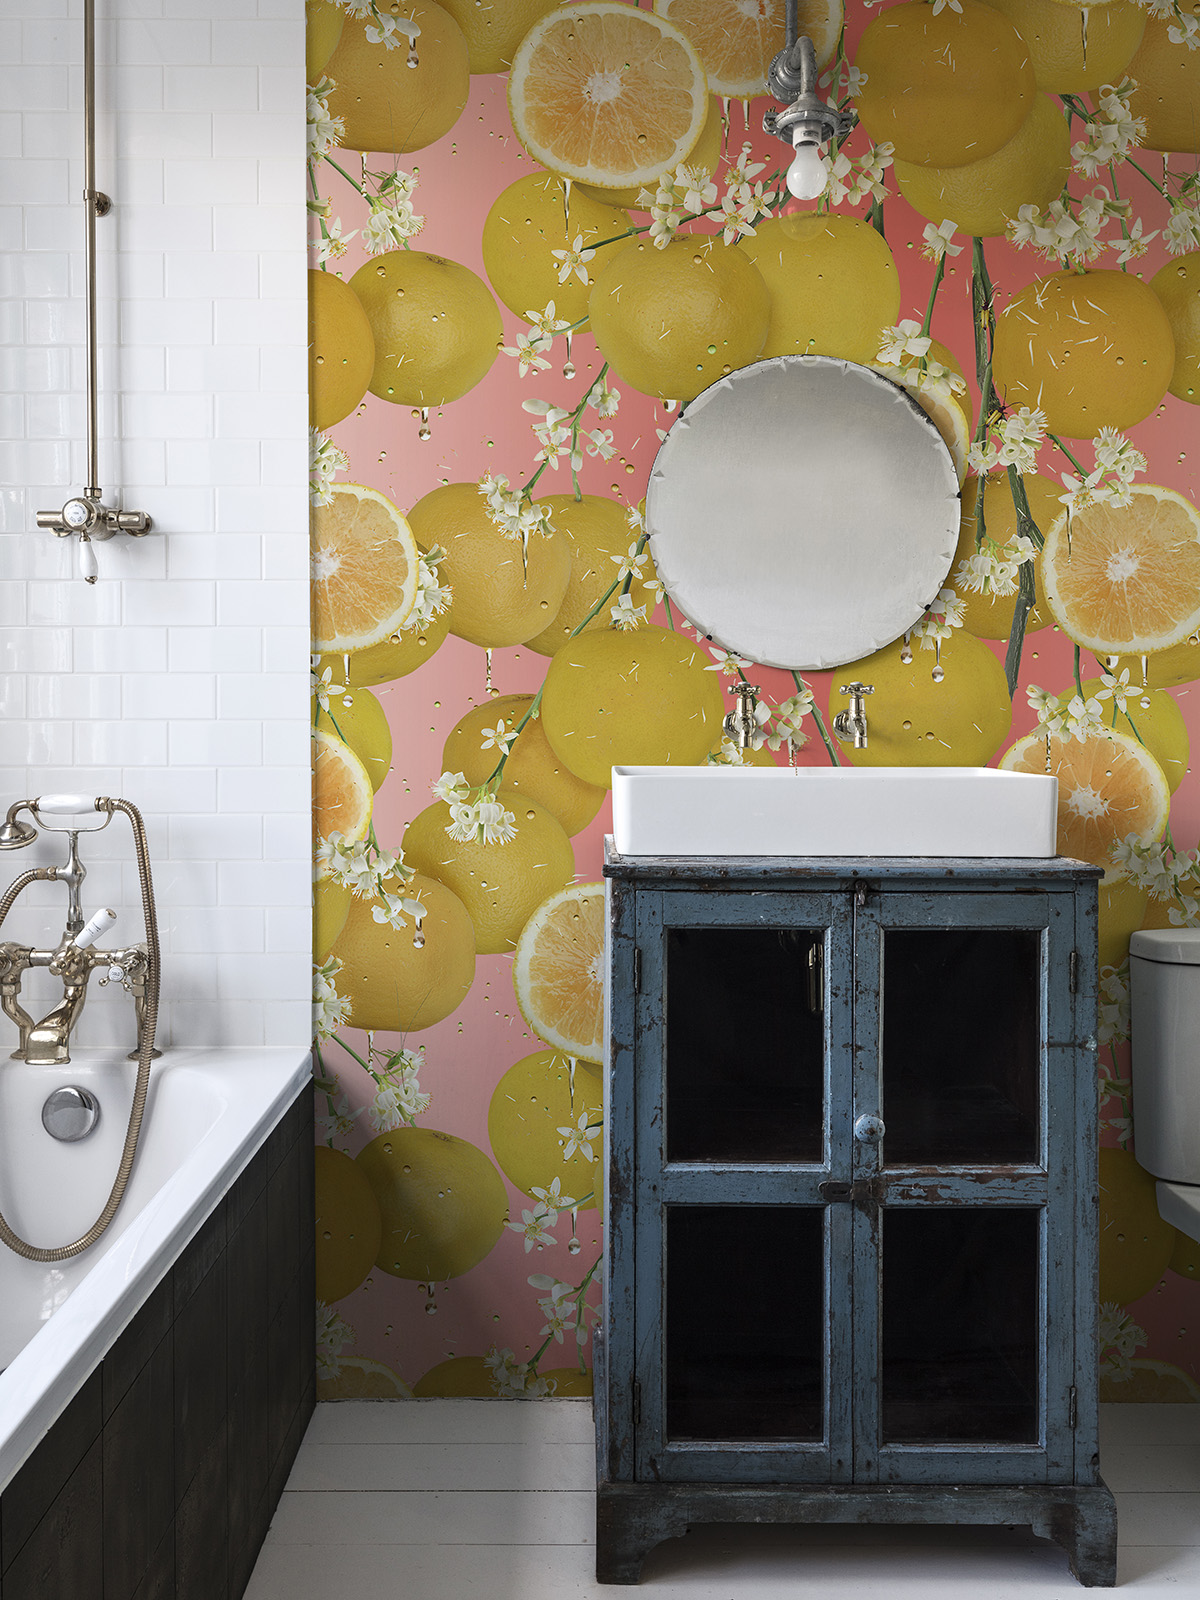 Interior Designer Sophie Robinson discusses and advises on wallpaper in the bathroom. Whether an accent wall or all four walls the result can be quirky yet modern look. Choose a bold design for maximum impact #sophierobinson #bathrooms #wallpaper